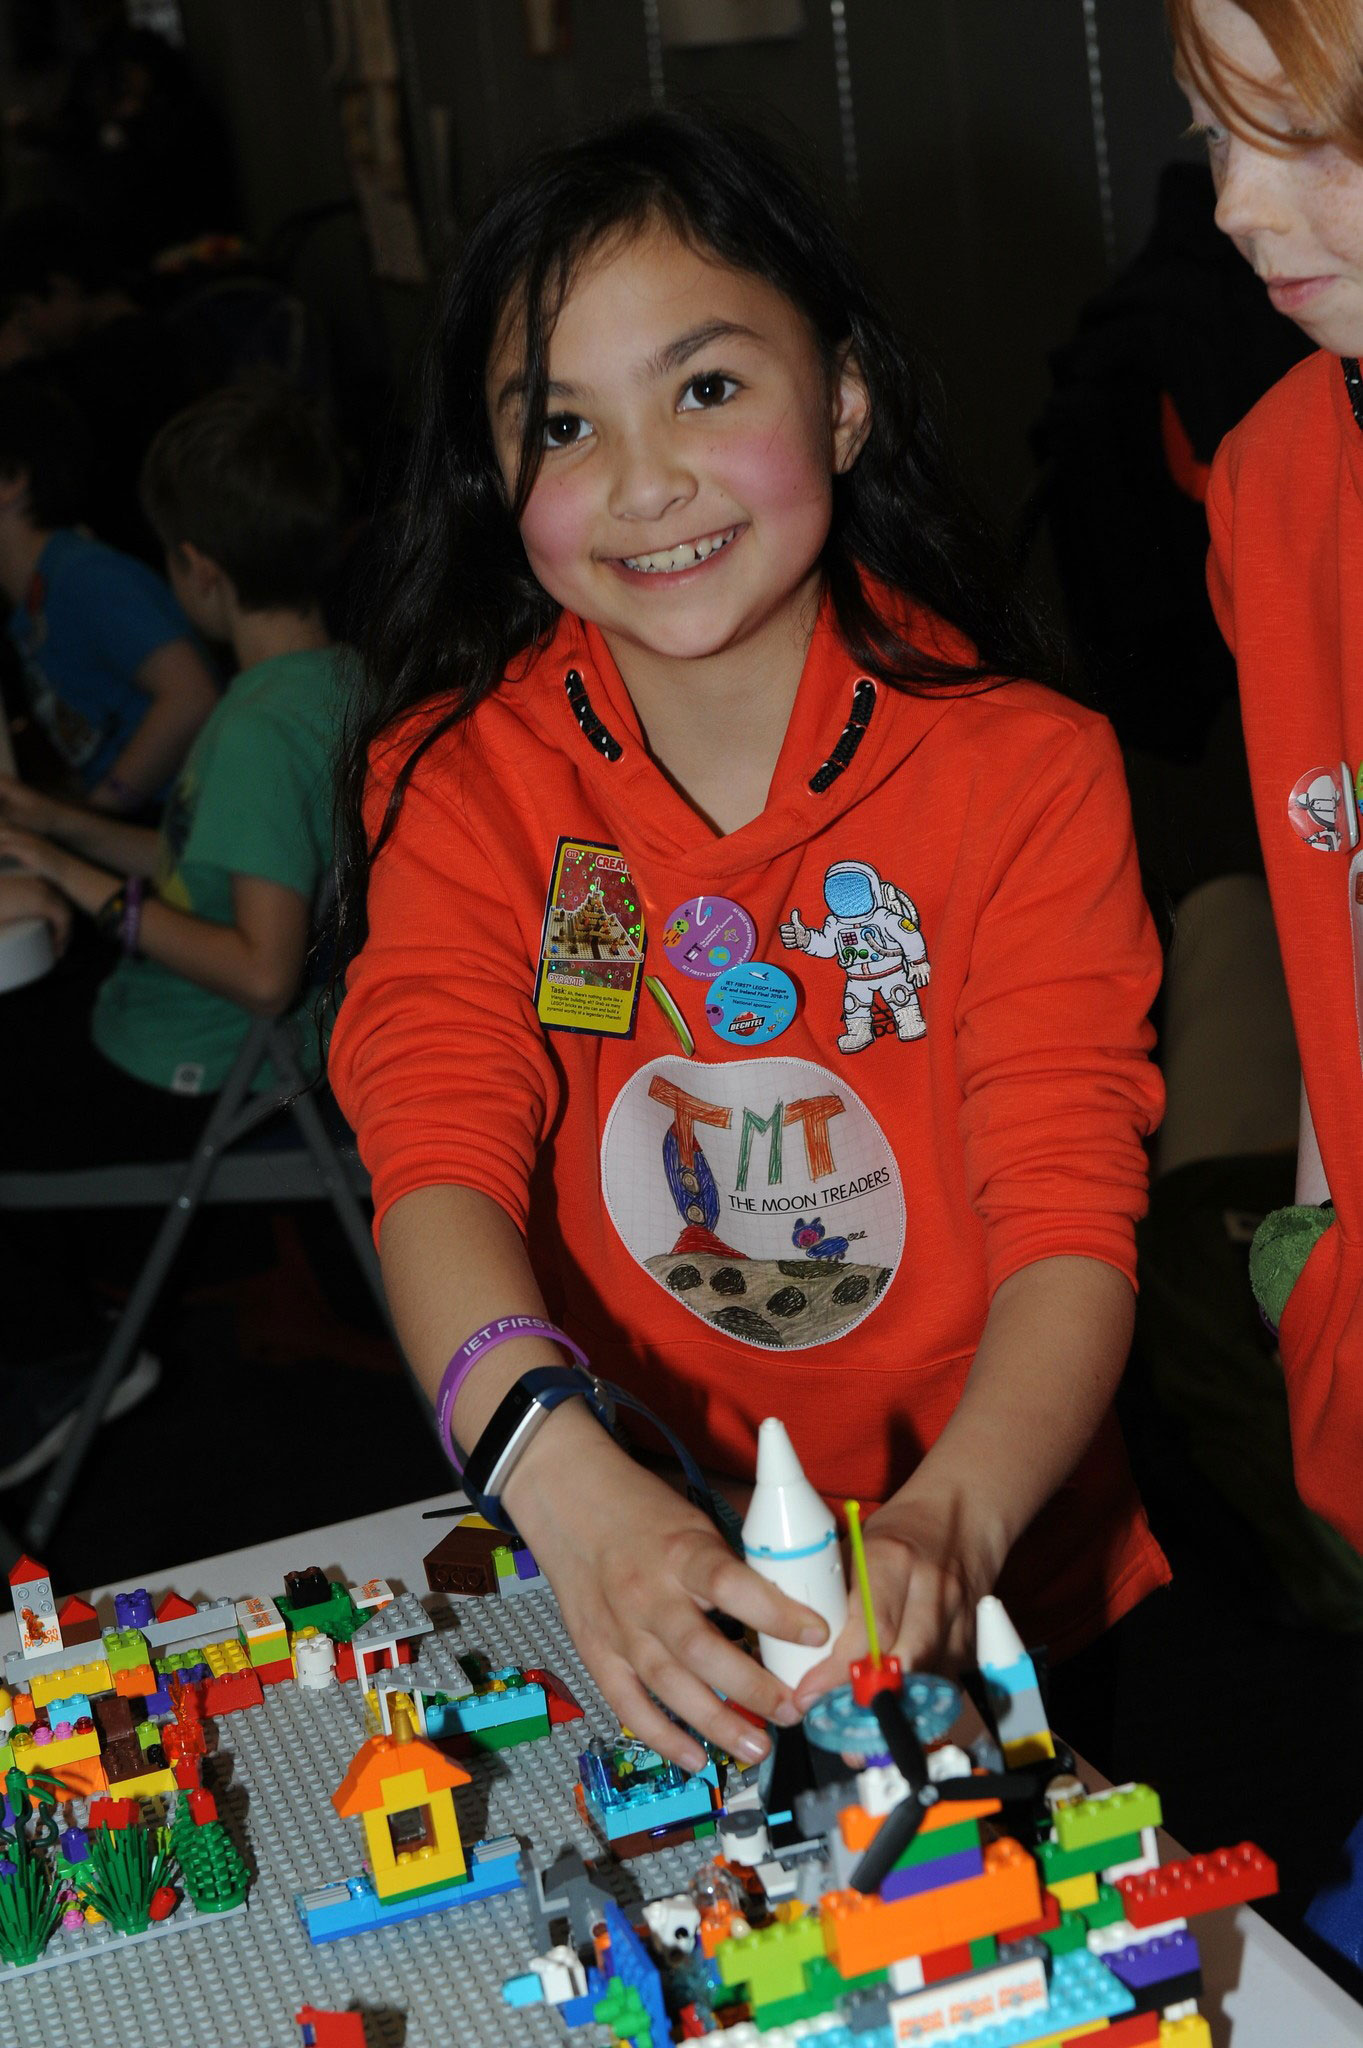 A young girl building with Lego